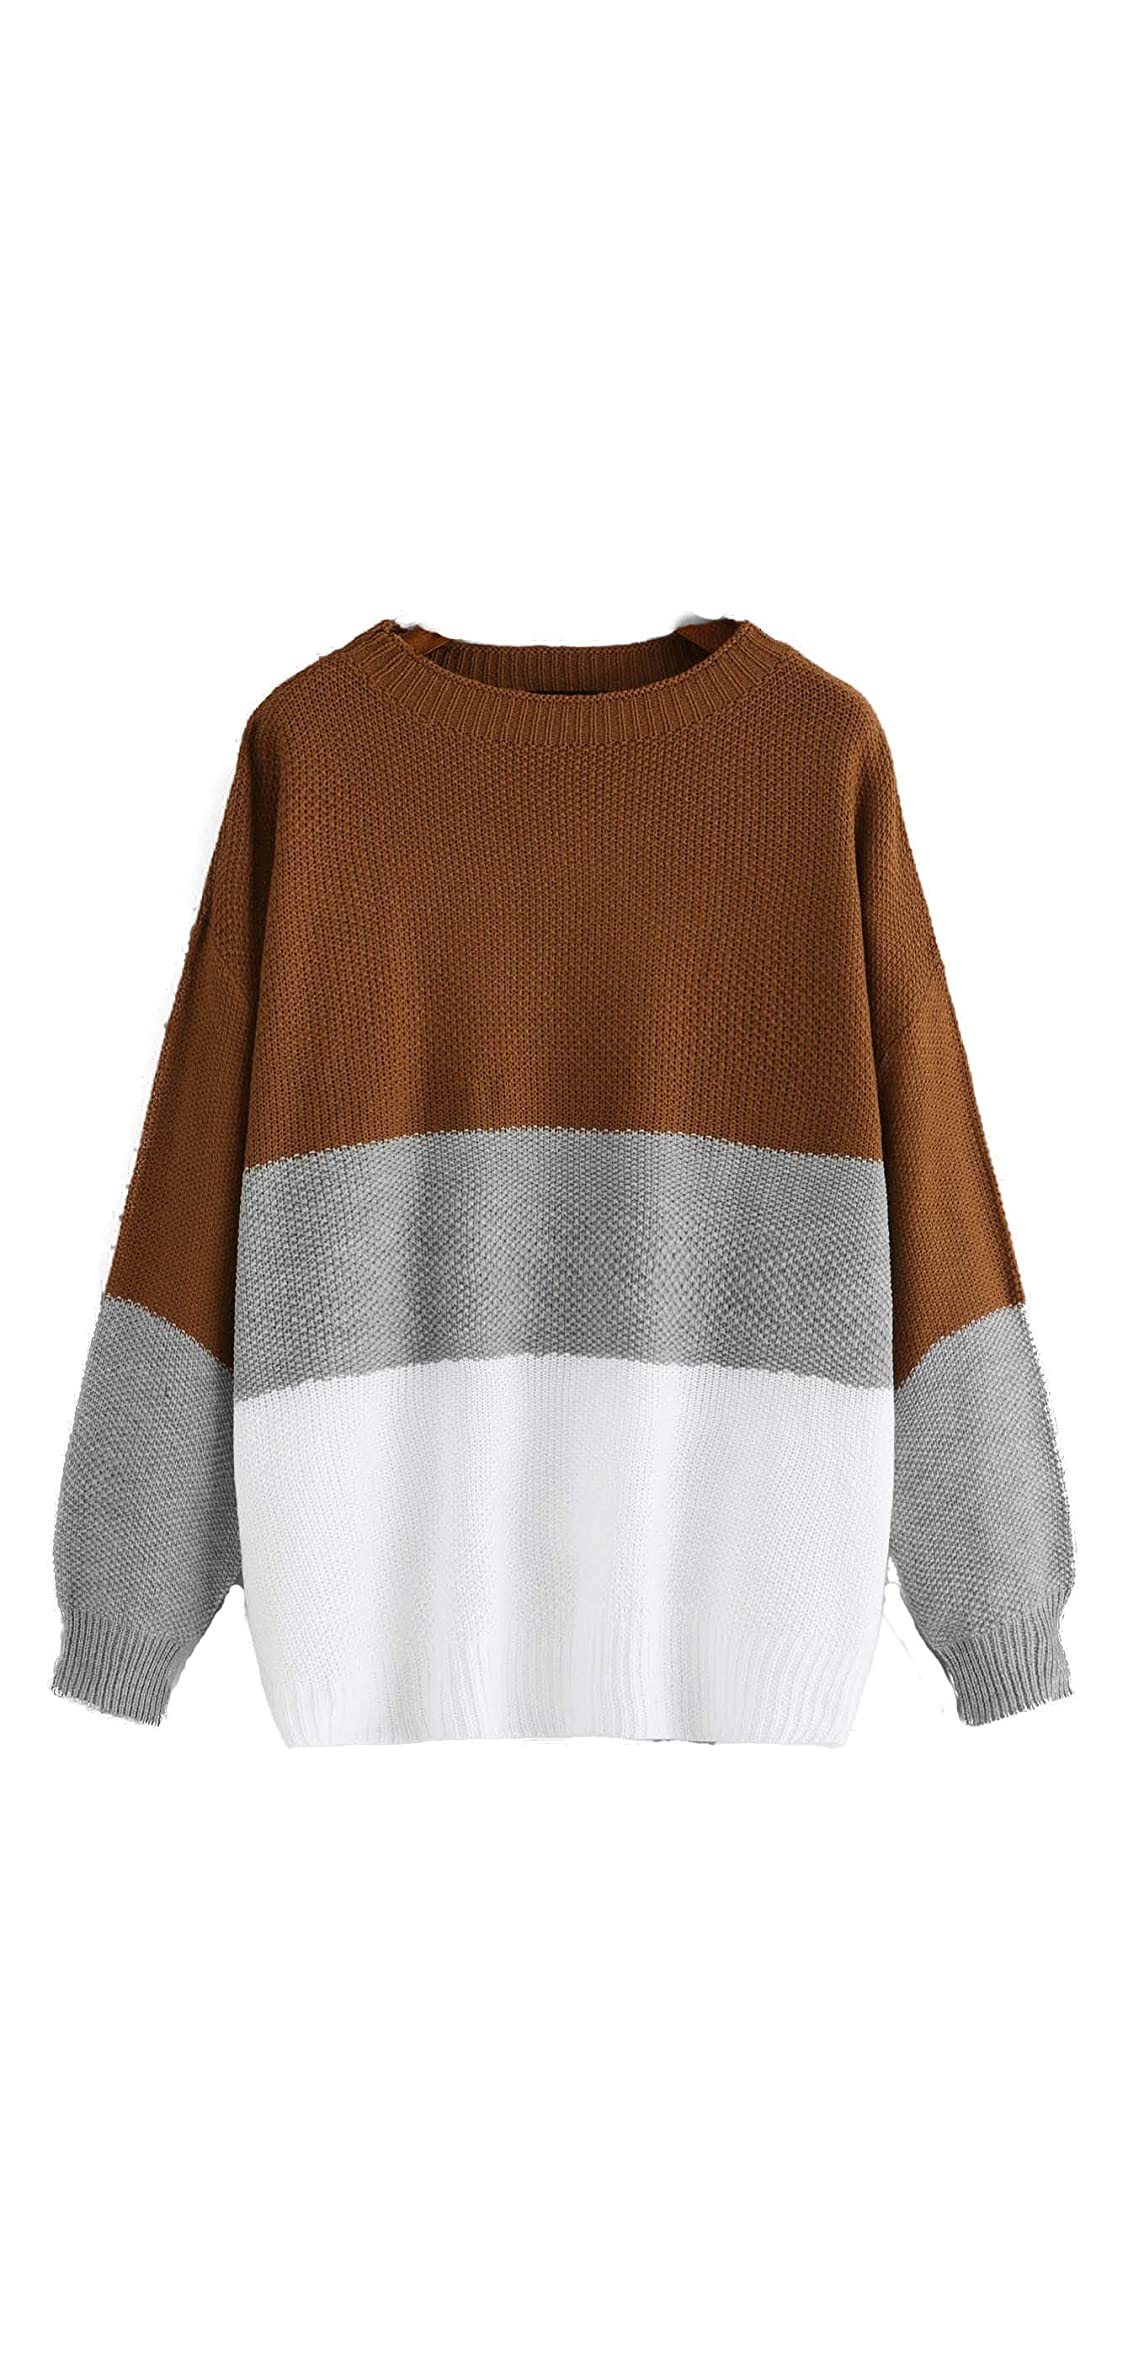 Women's Drop Shoulder Color Block Textured Jumper Casual